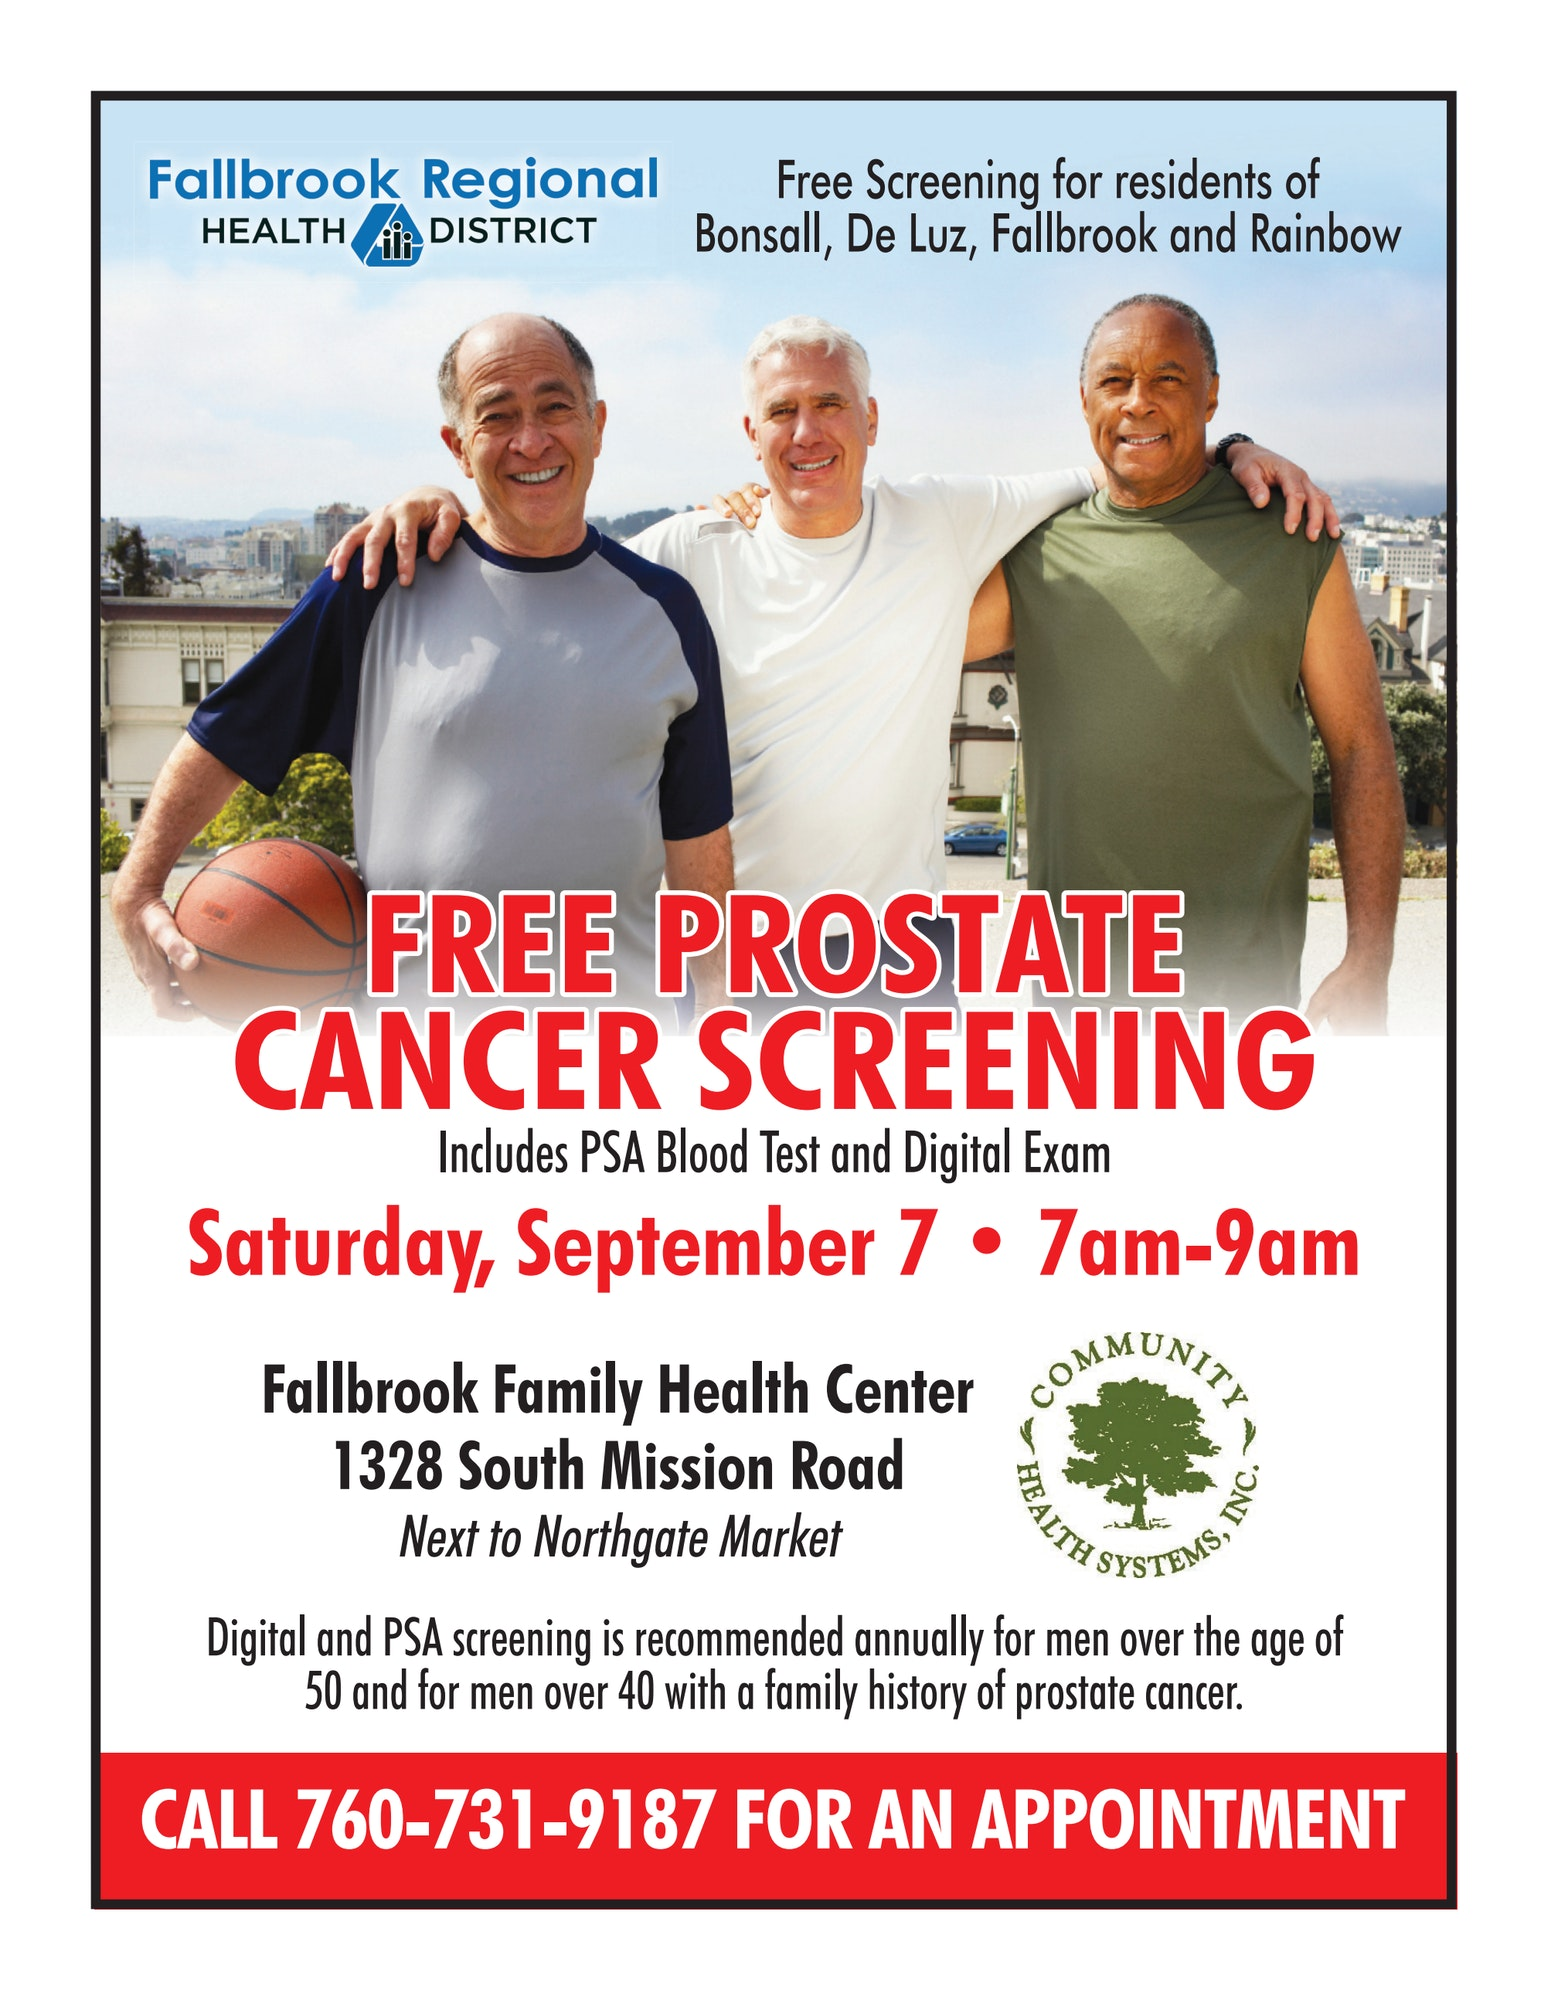 Free prostate cancer screening. Saturday, September 7th, 7am-9pm. Call 7607319187 to make an appointment.